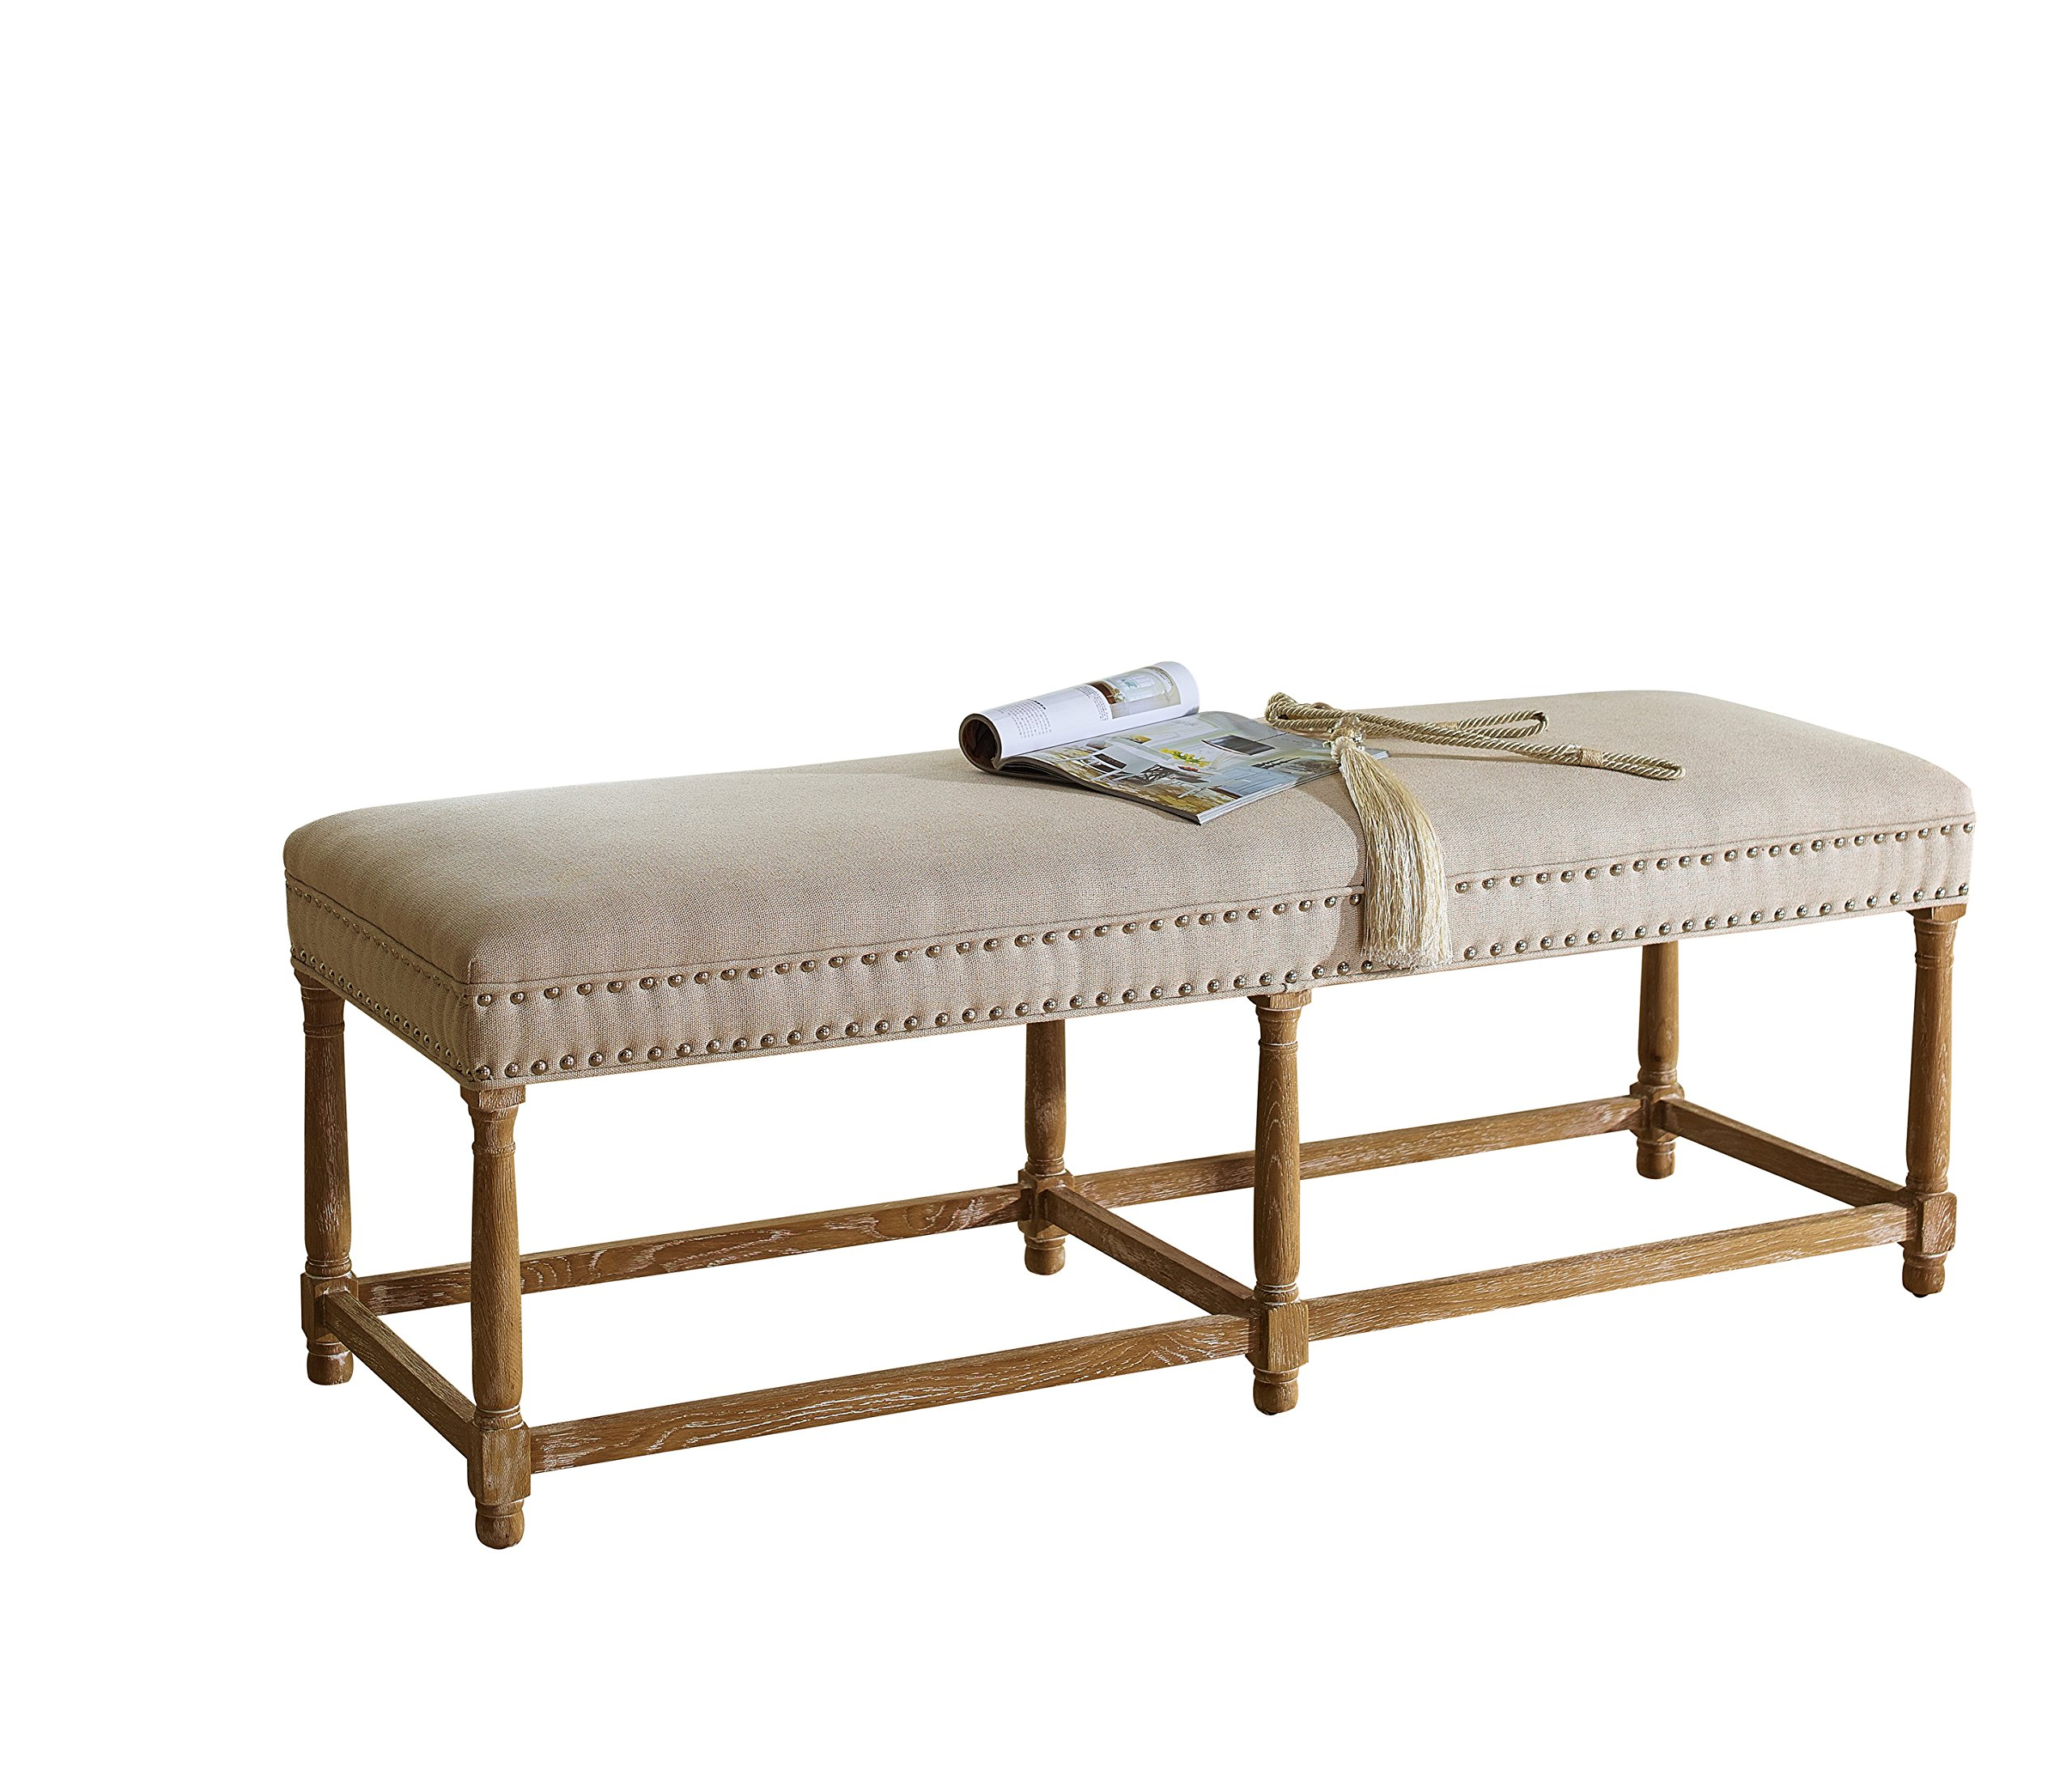 Baxton Studio Nathan Oak Wood and Beige Linen Modern Country Console Bench